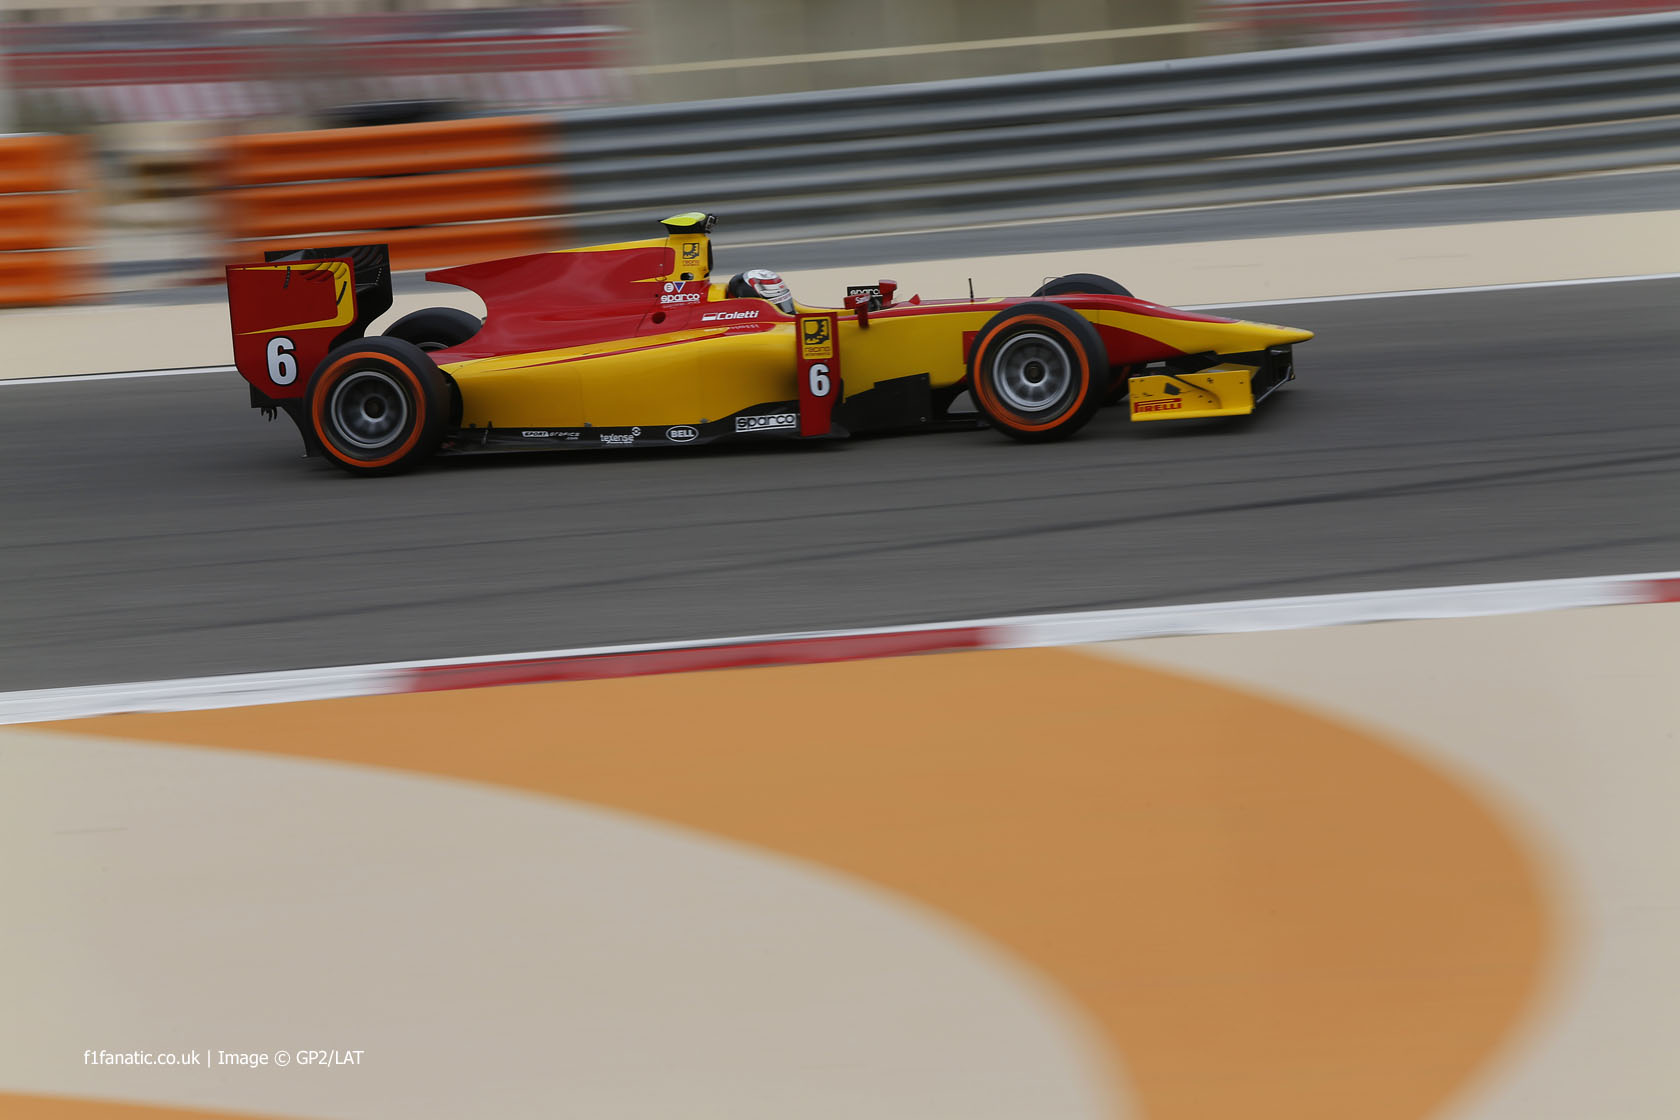 Stefano Coletti, Racing Engineering, GP2, Bahrain, 2014